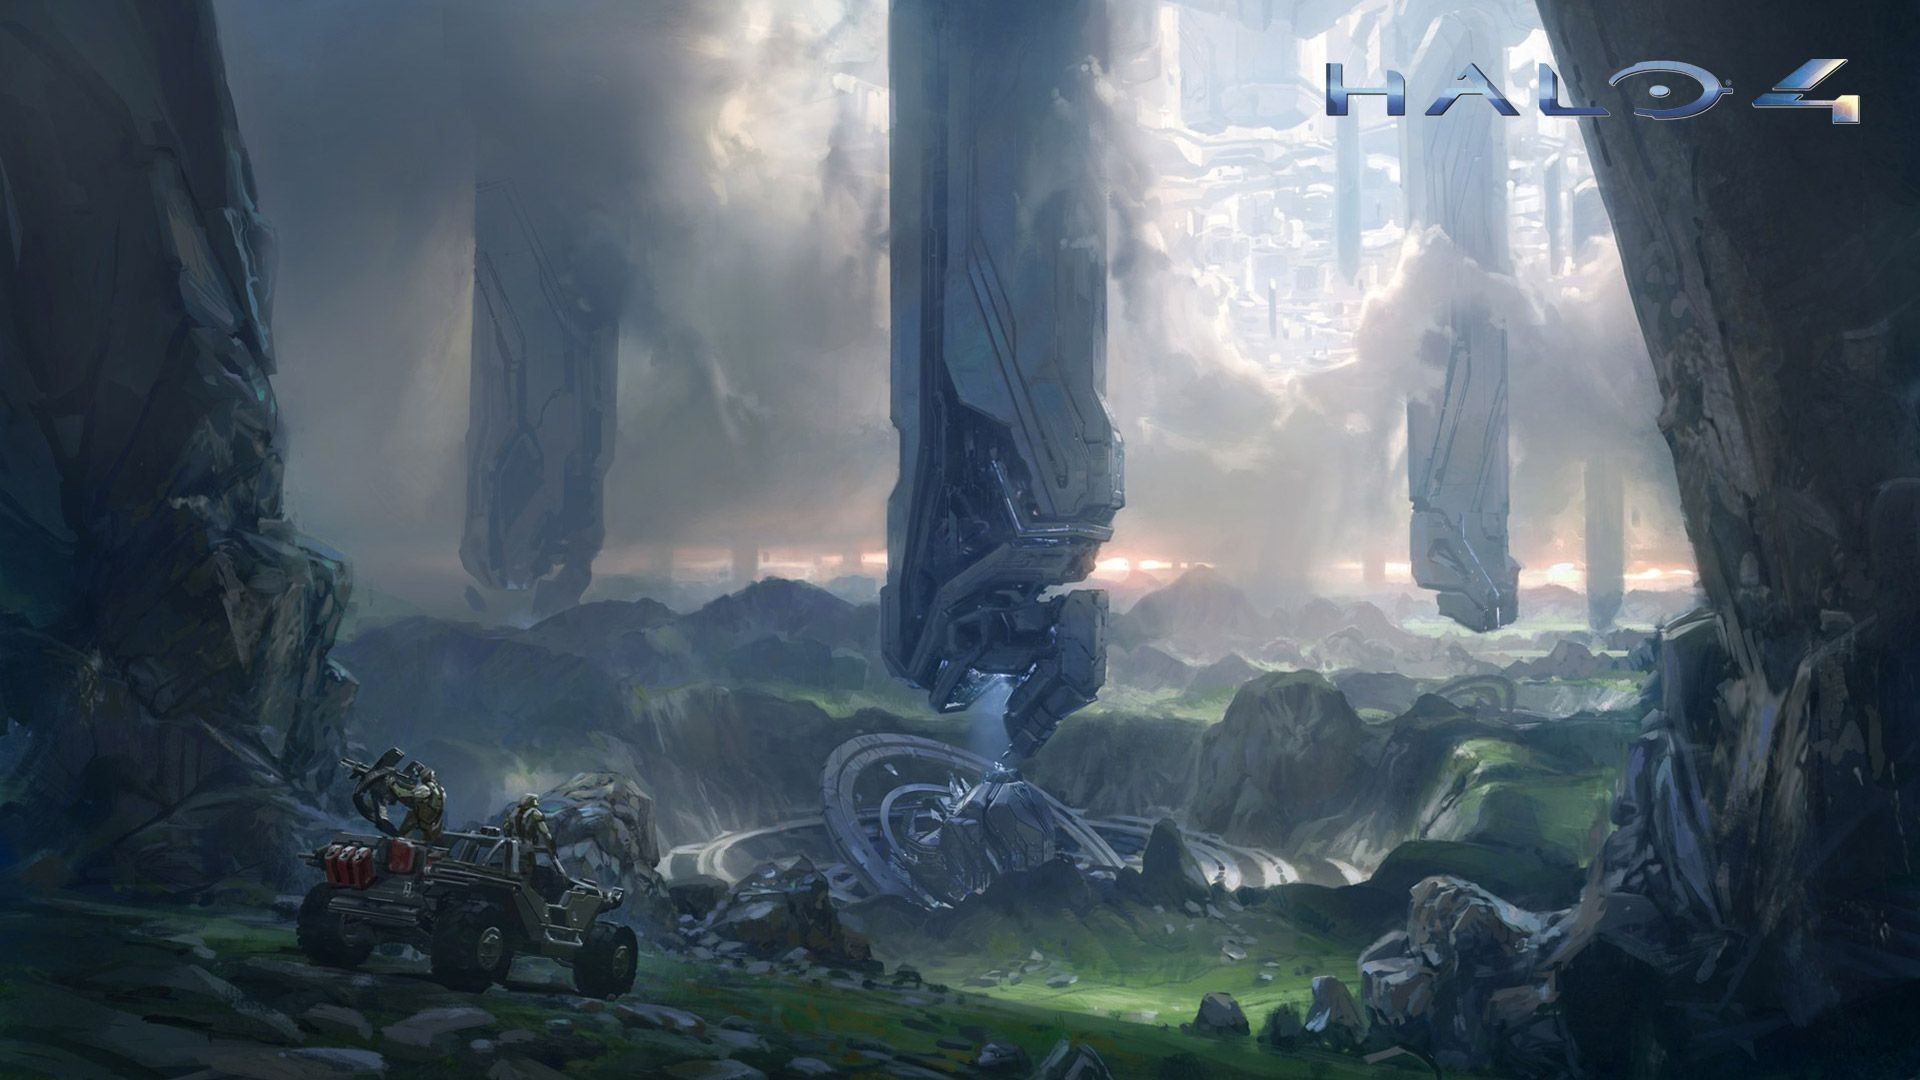 Halo 4 Wallpapers Hd 71 Background Pictures